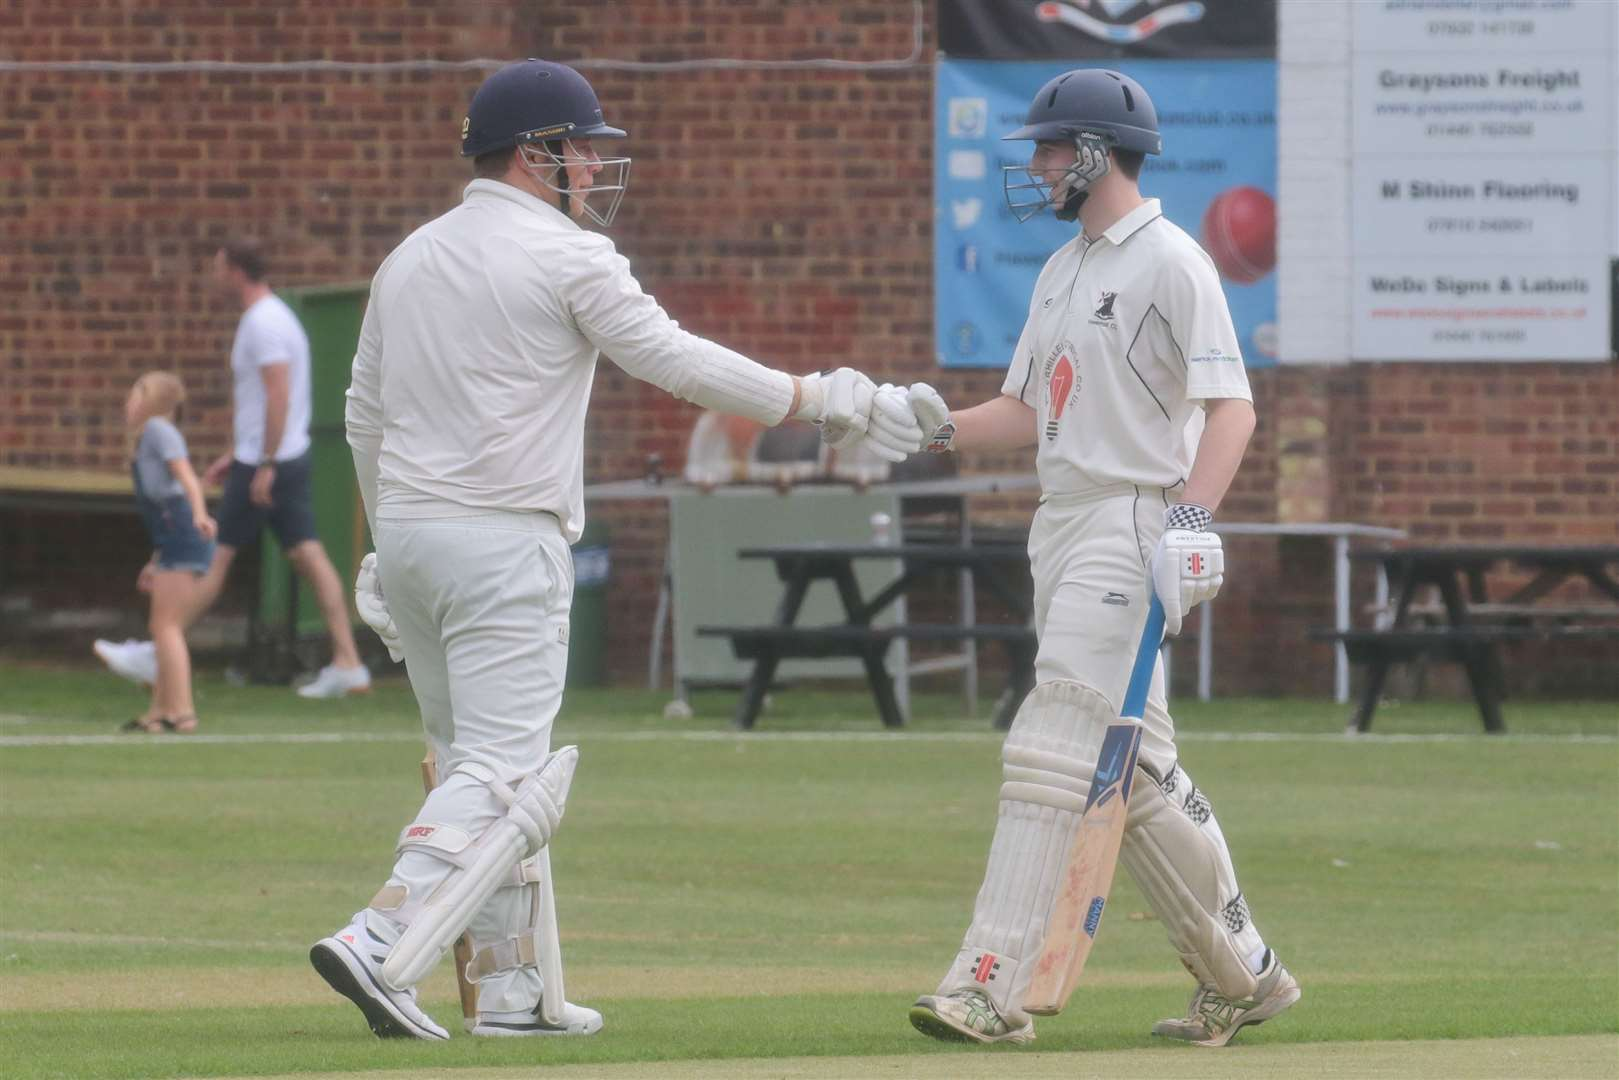 BF-10-08-2019-020-GD Haverhill batsman Sam Charlton congratulates Sam Street on a Four. (15076145)